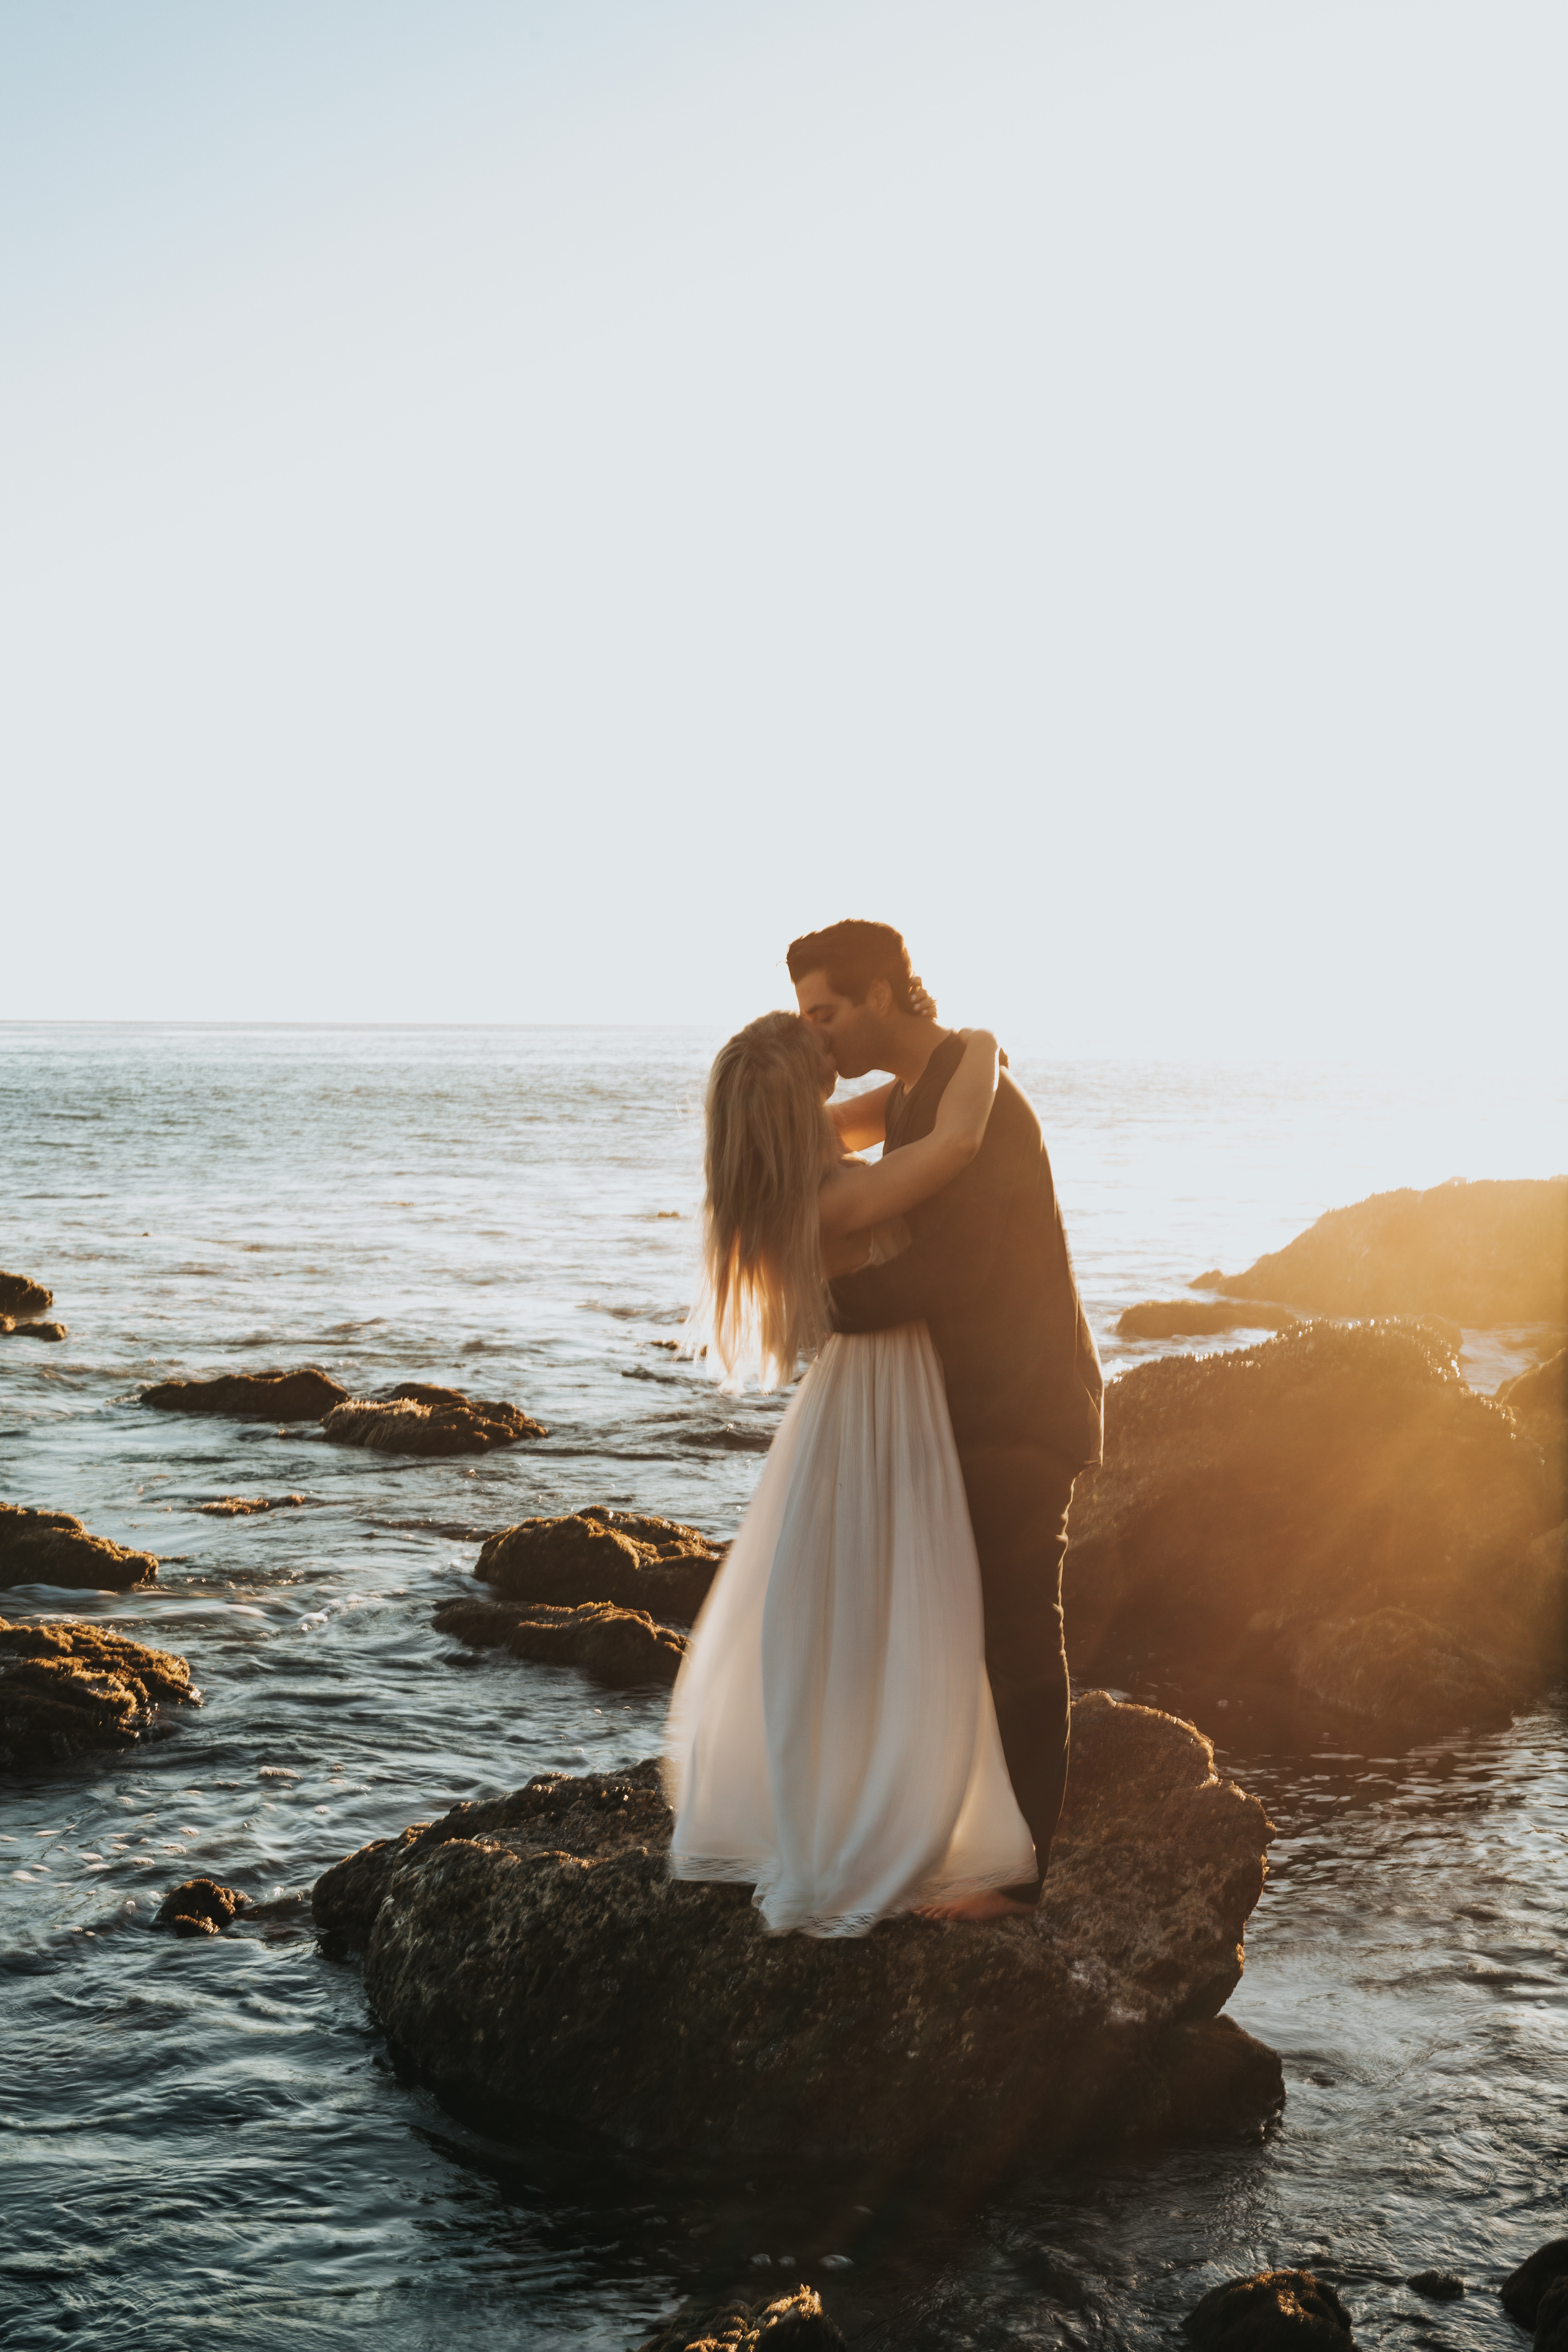 156086 download wallpaper Love, Couple, Pair, Kiss, Sunset, Sea, Tenderness, Romance screensavers and pictures for free